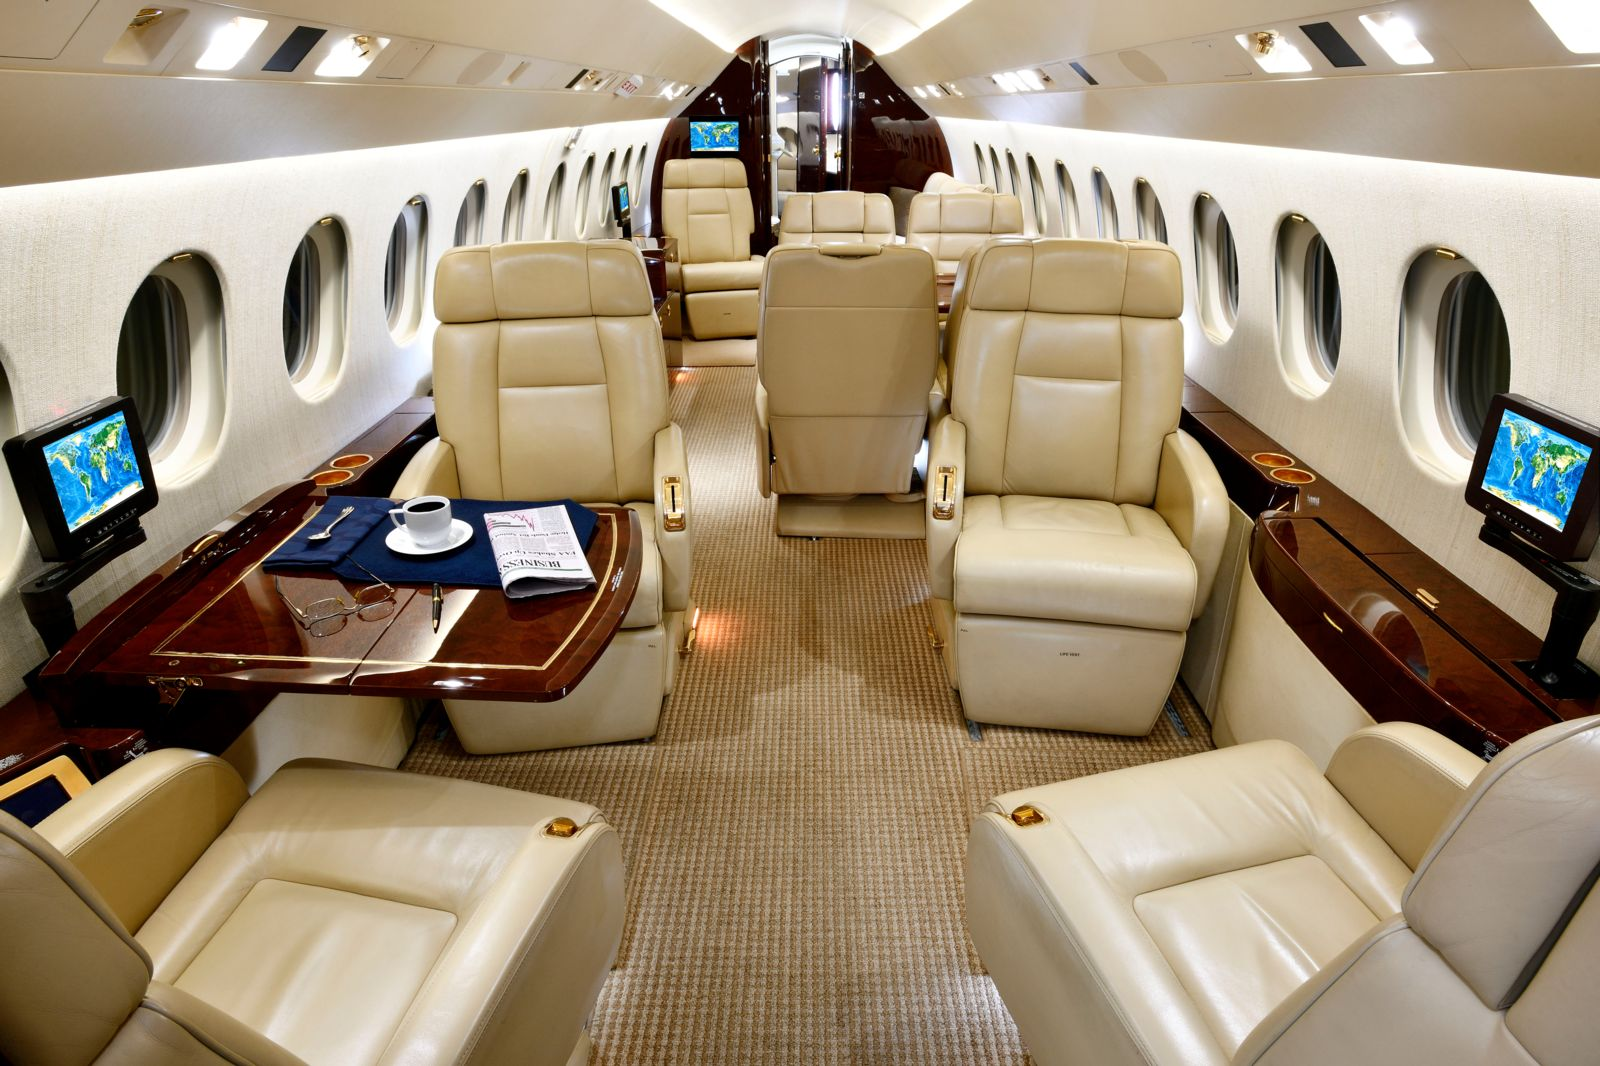 Dassault Falcon 900EX EASy  S/N 229 for sale | gallery image: /userfiles/images/F900EXy_sn229/fwd%20aft.jpg